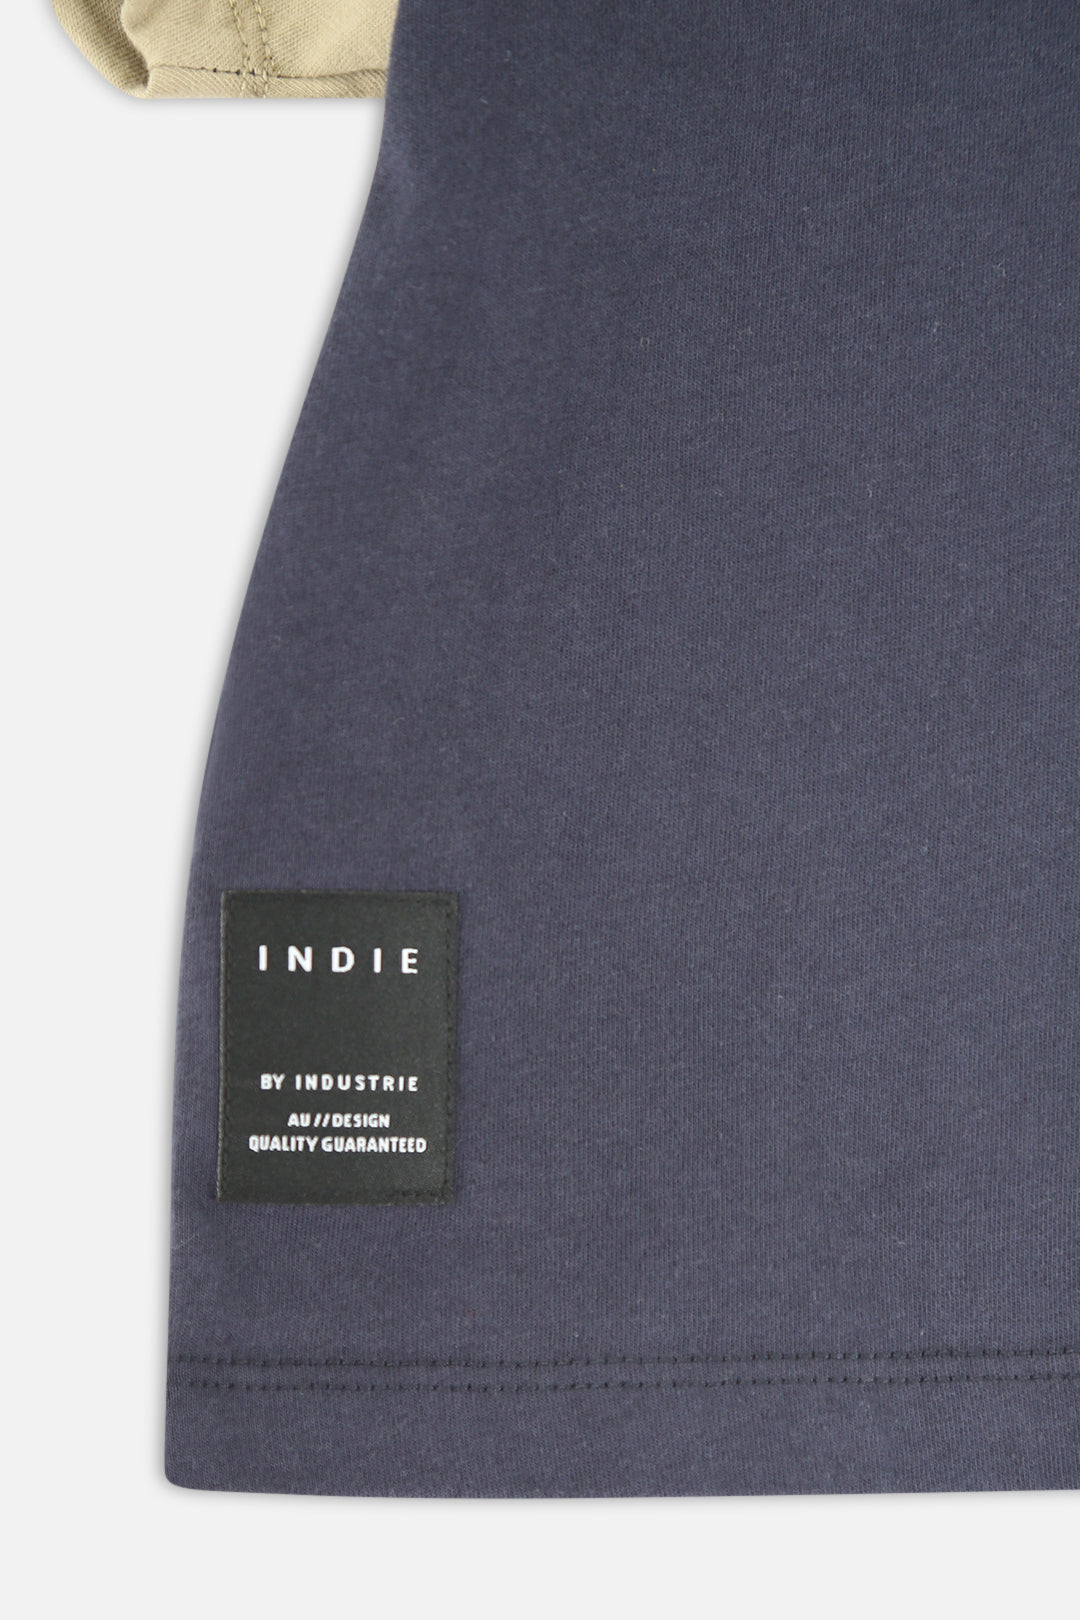 Indie Colour Block Tee - Navy